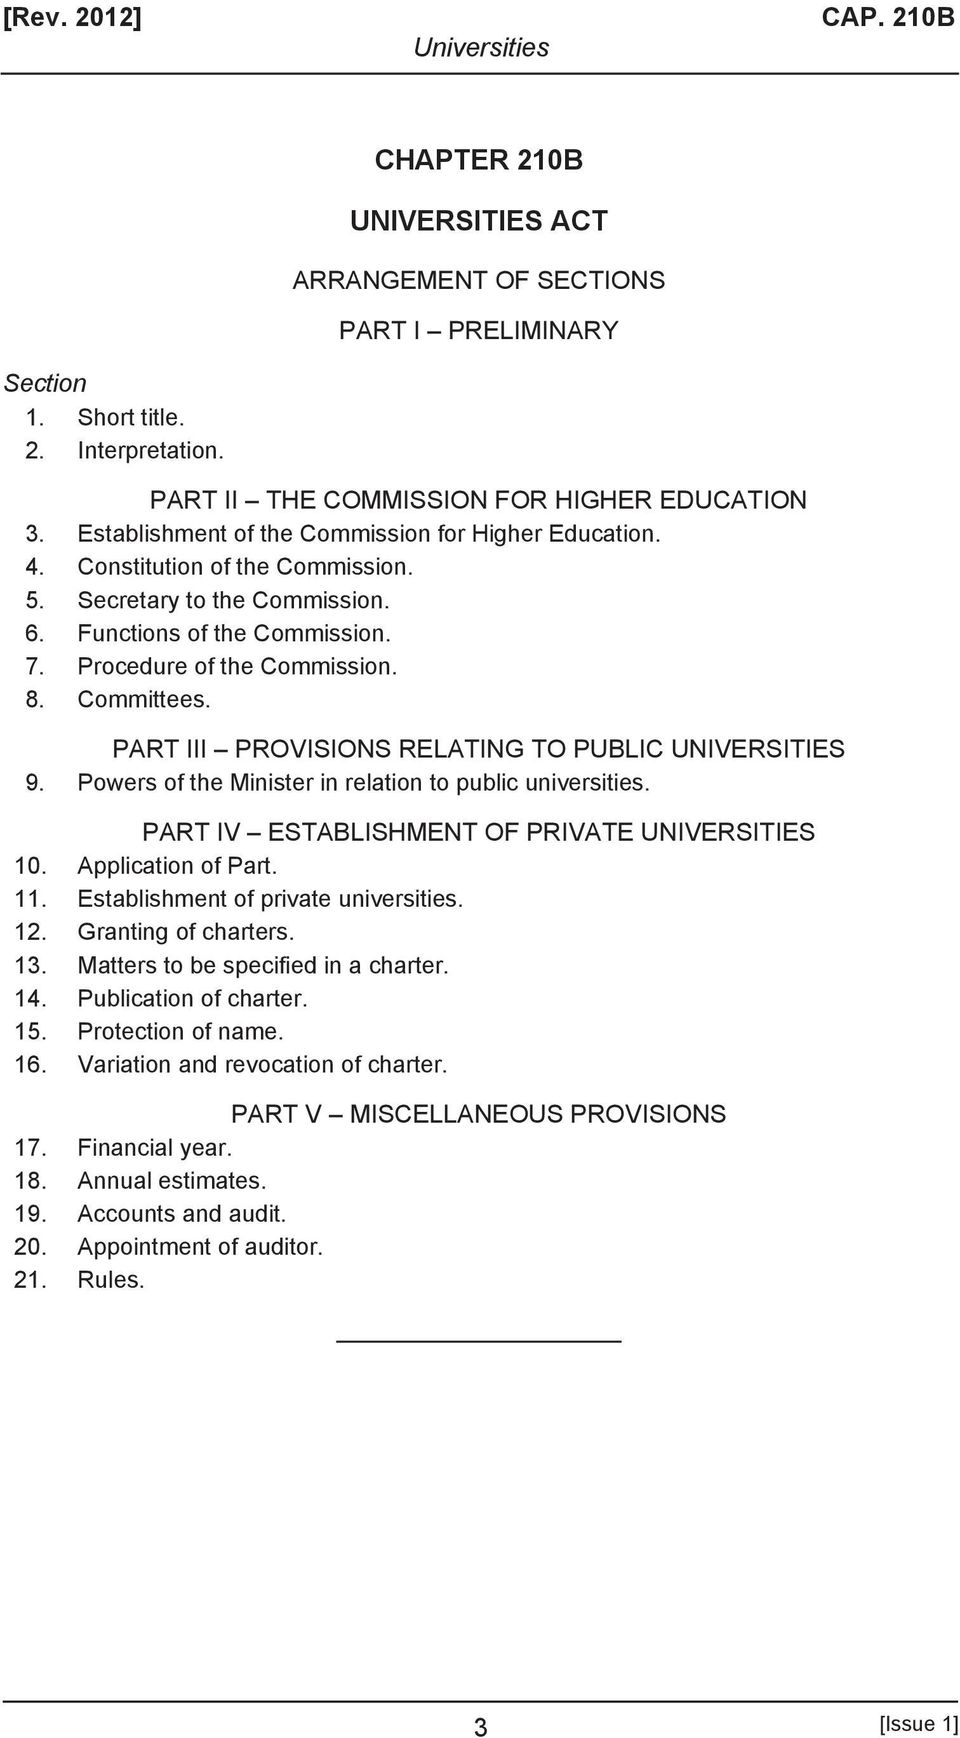 PART III PROVISIONS RELATING TO PUBLIC UNIVERSITIES 9. Powers of the Minister in relation to public universities. PART IV ESTABLISHMENT OF PRIVATE UNIVERSITIES 10. Application of Part. 11.